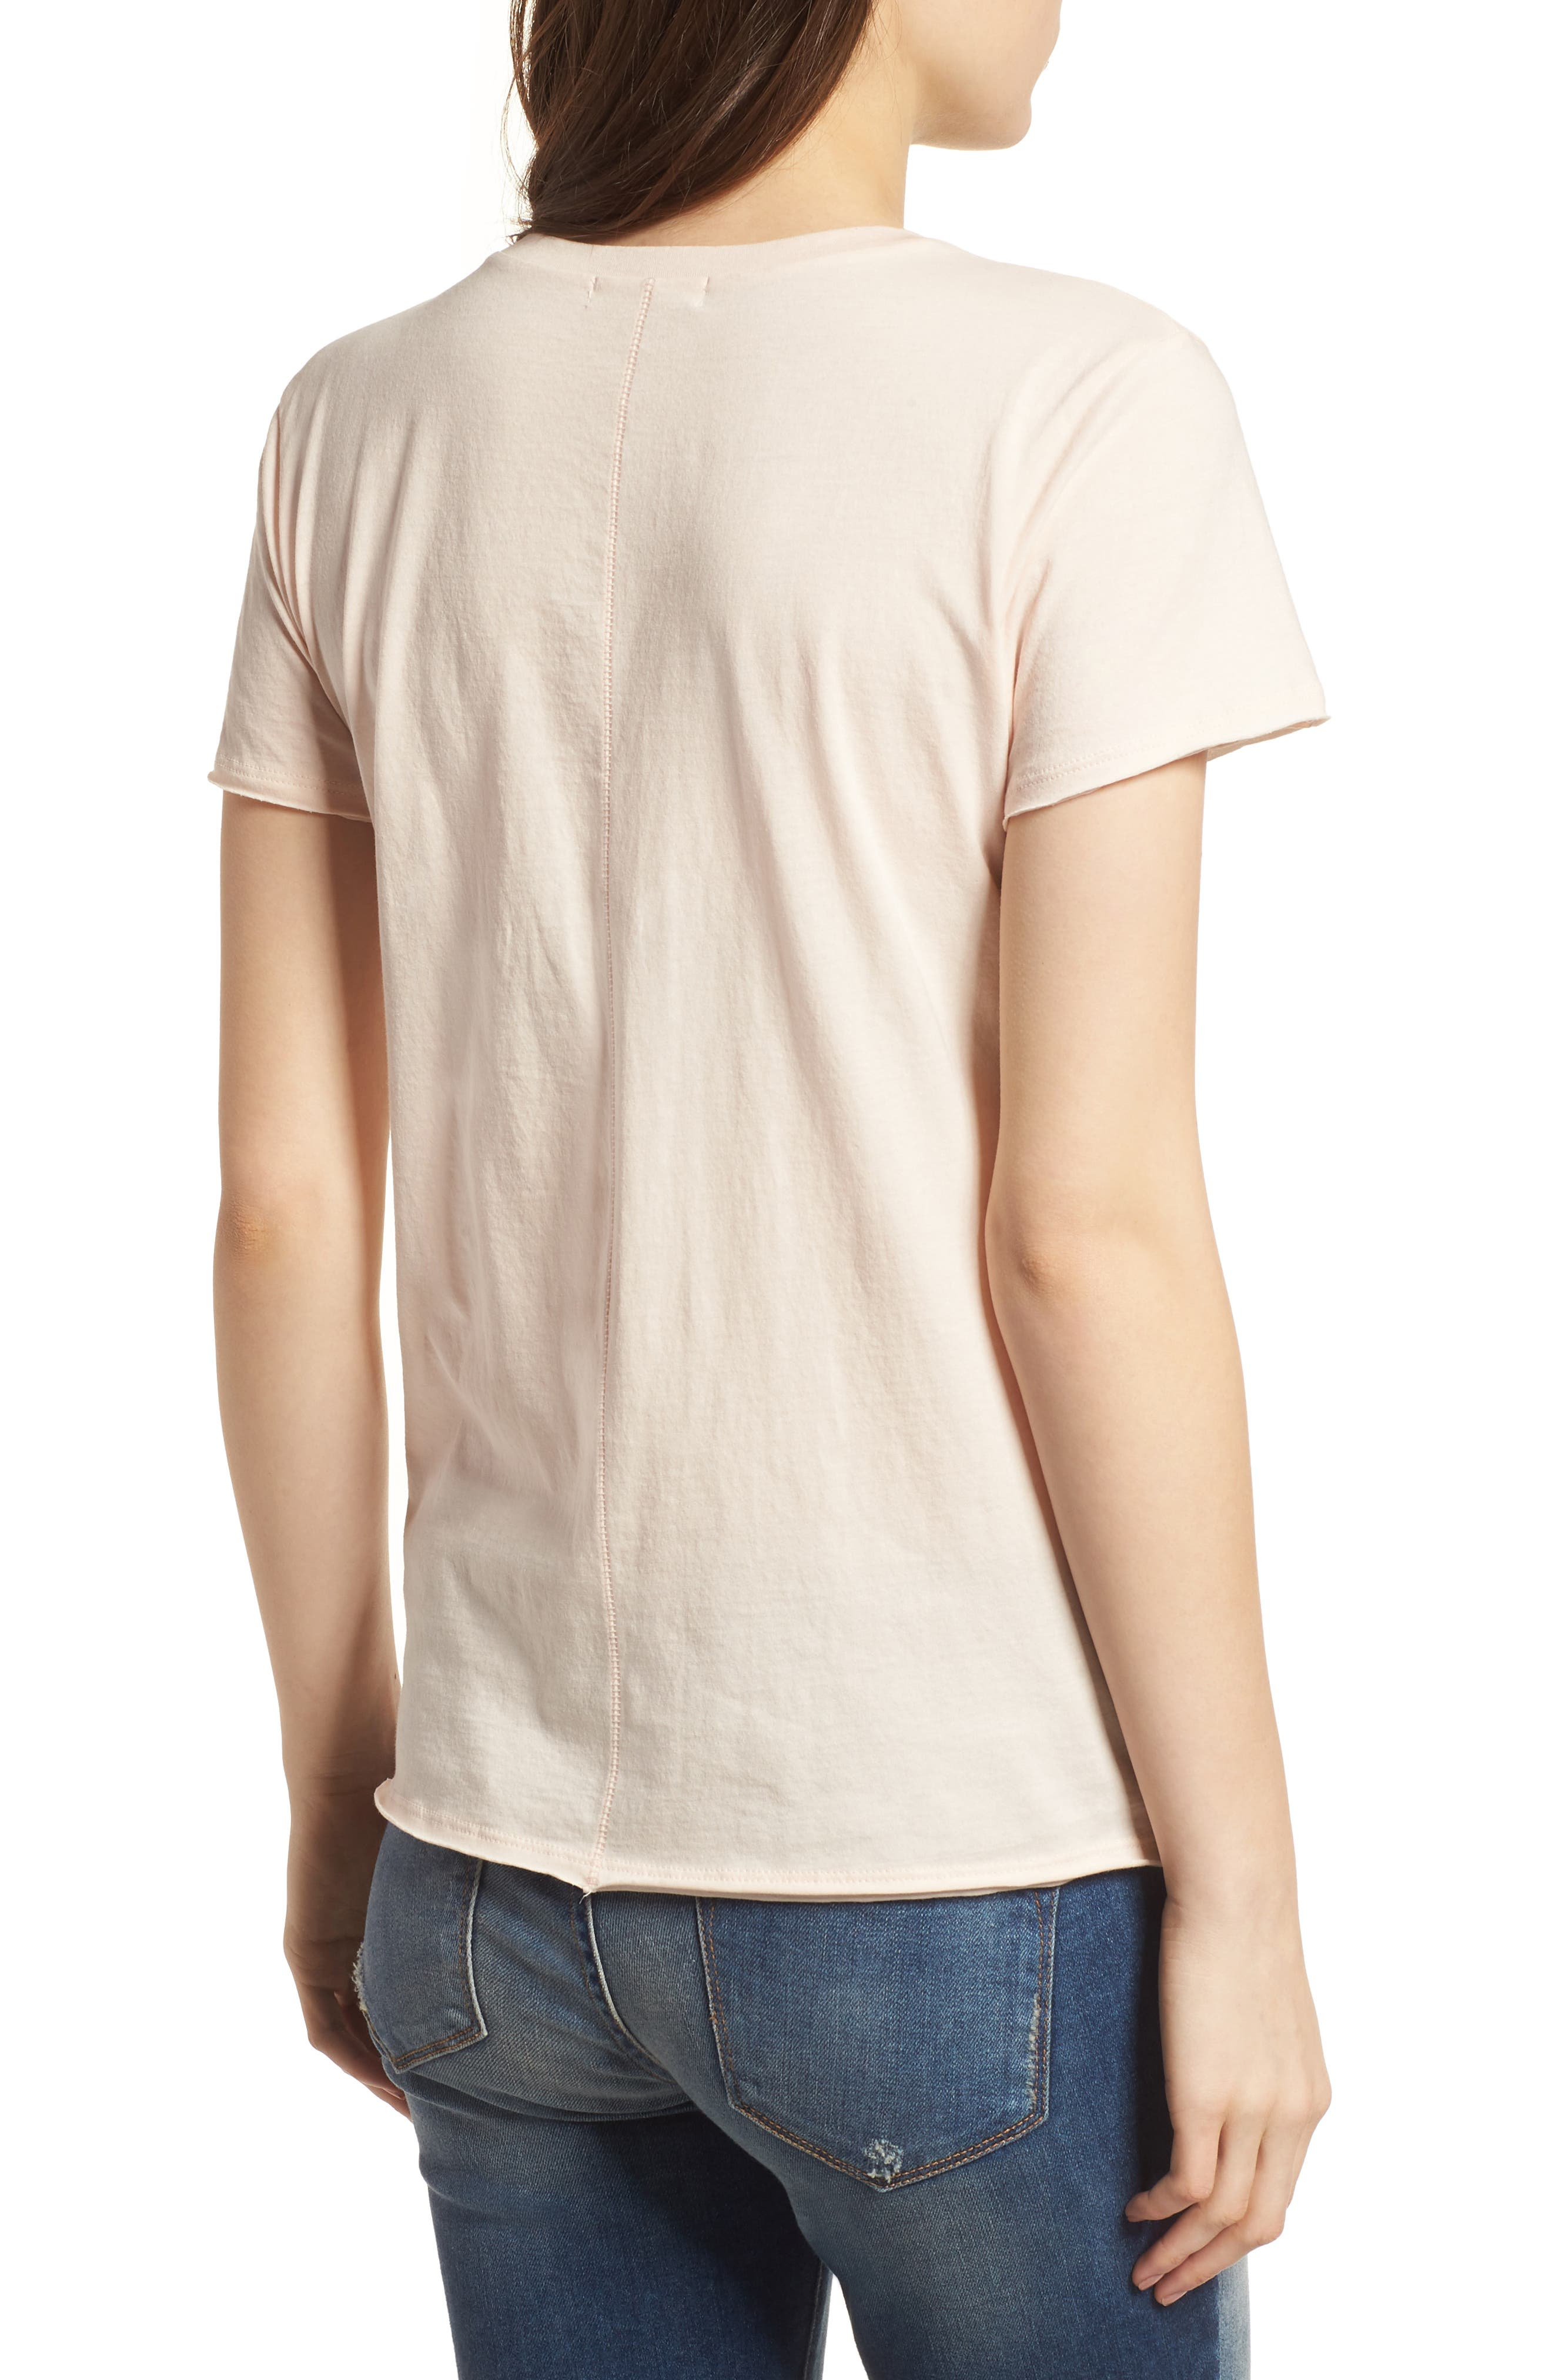 Los Angeles Dodgers Fader Letter Tee,                             Alternate thumbnail 2, color,                             Blush